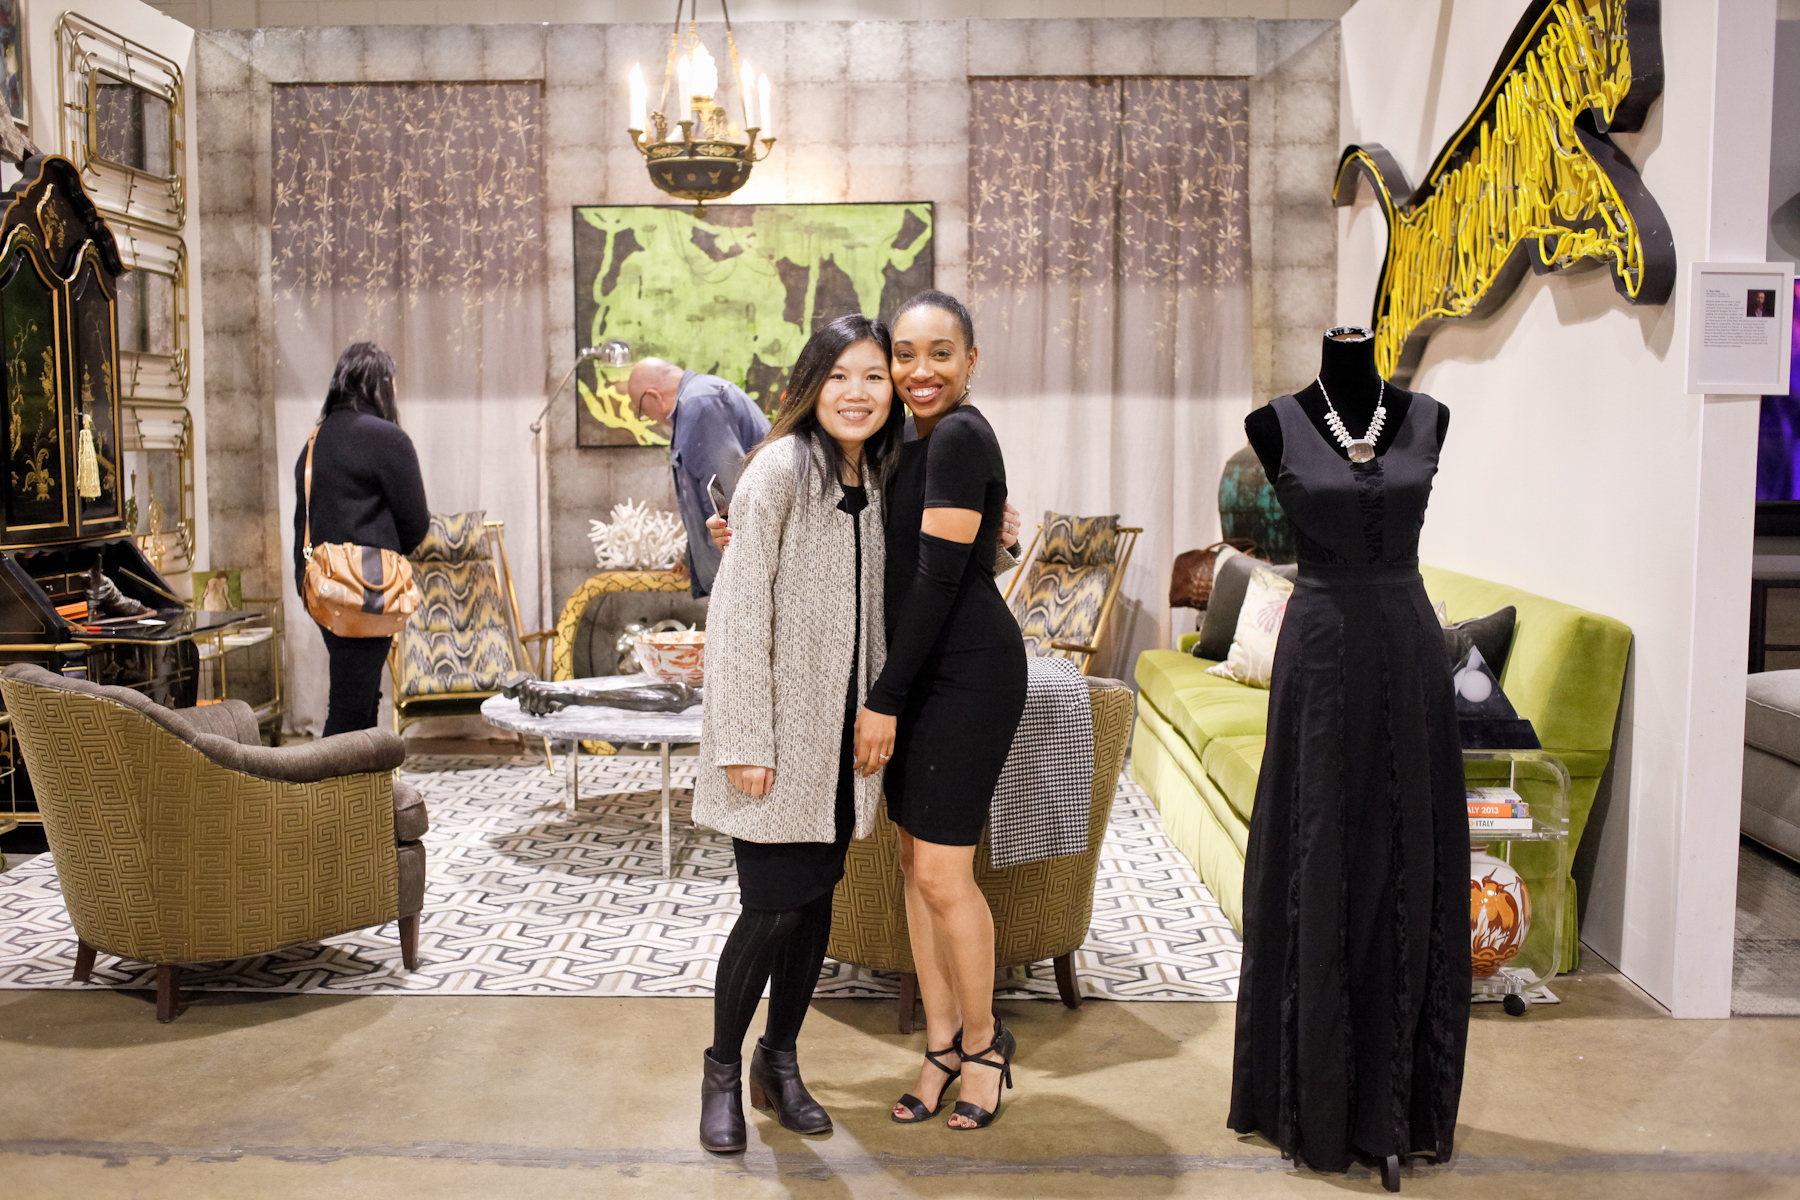 Andrea Fenise Memphis Fashion Blogger shares Arts Memphis